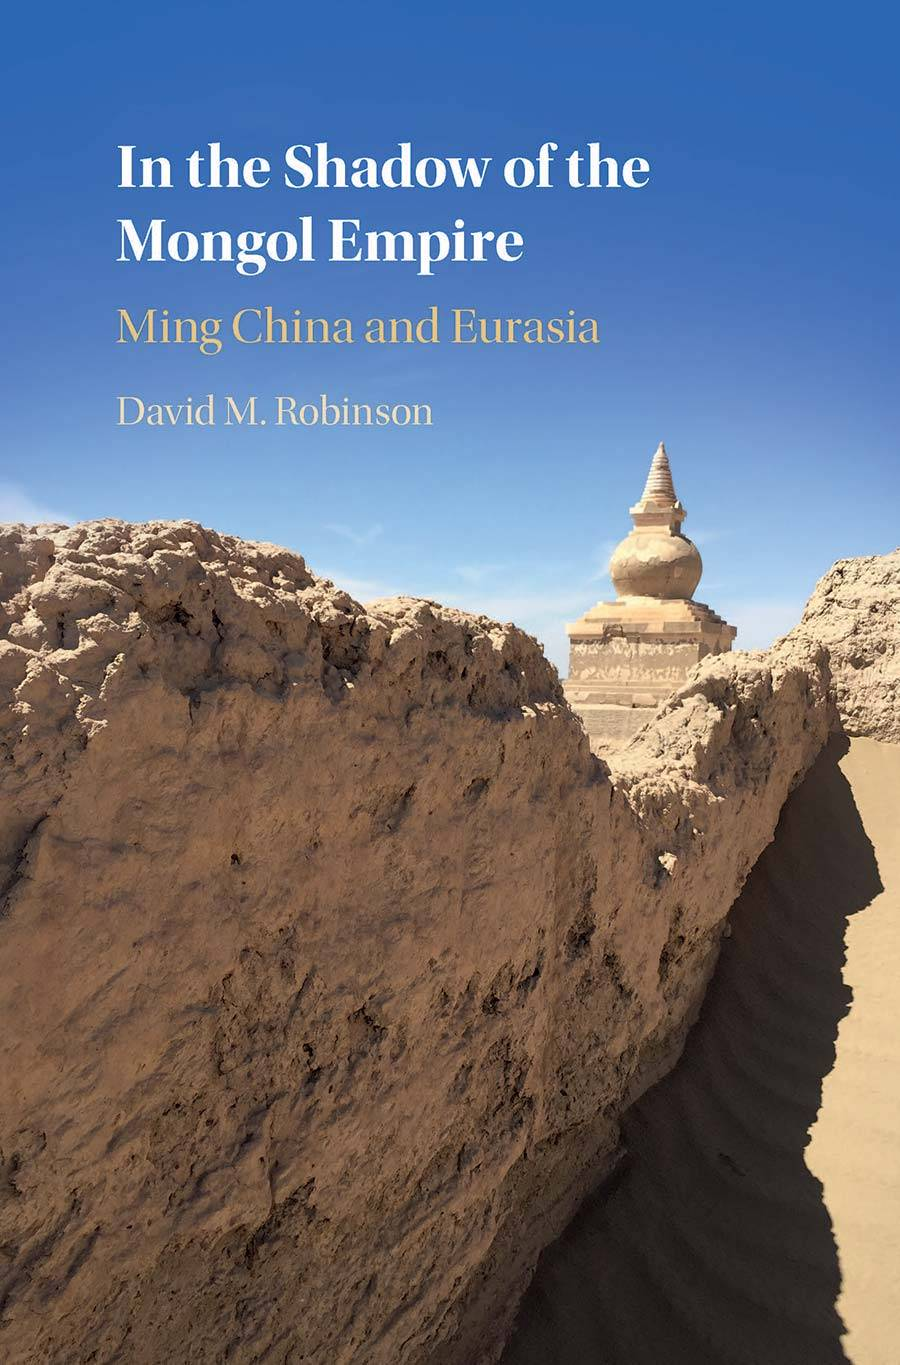 In the Shadow of the Mongol Empire: Ming China and Eurasia Book Cover